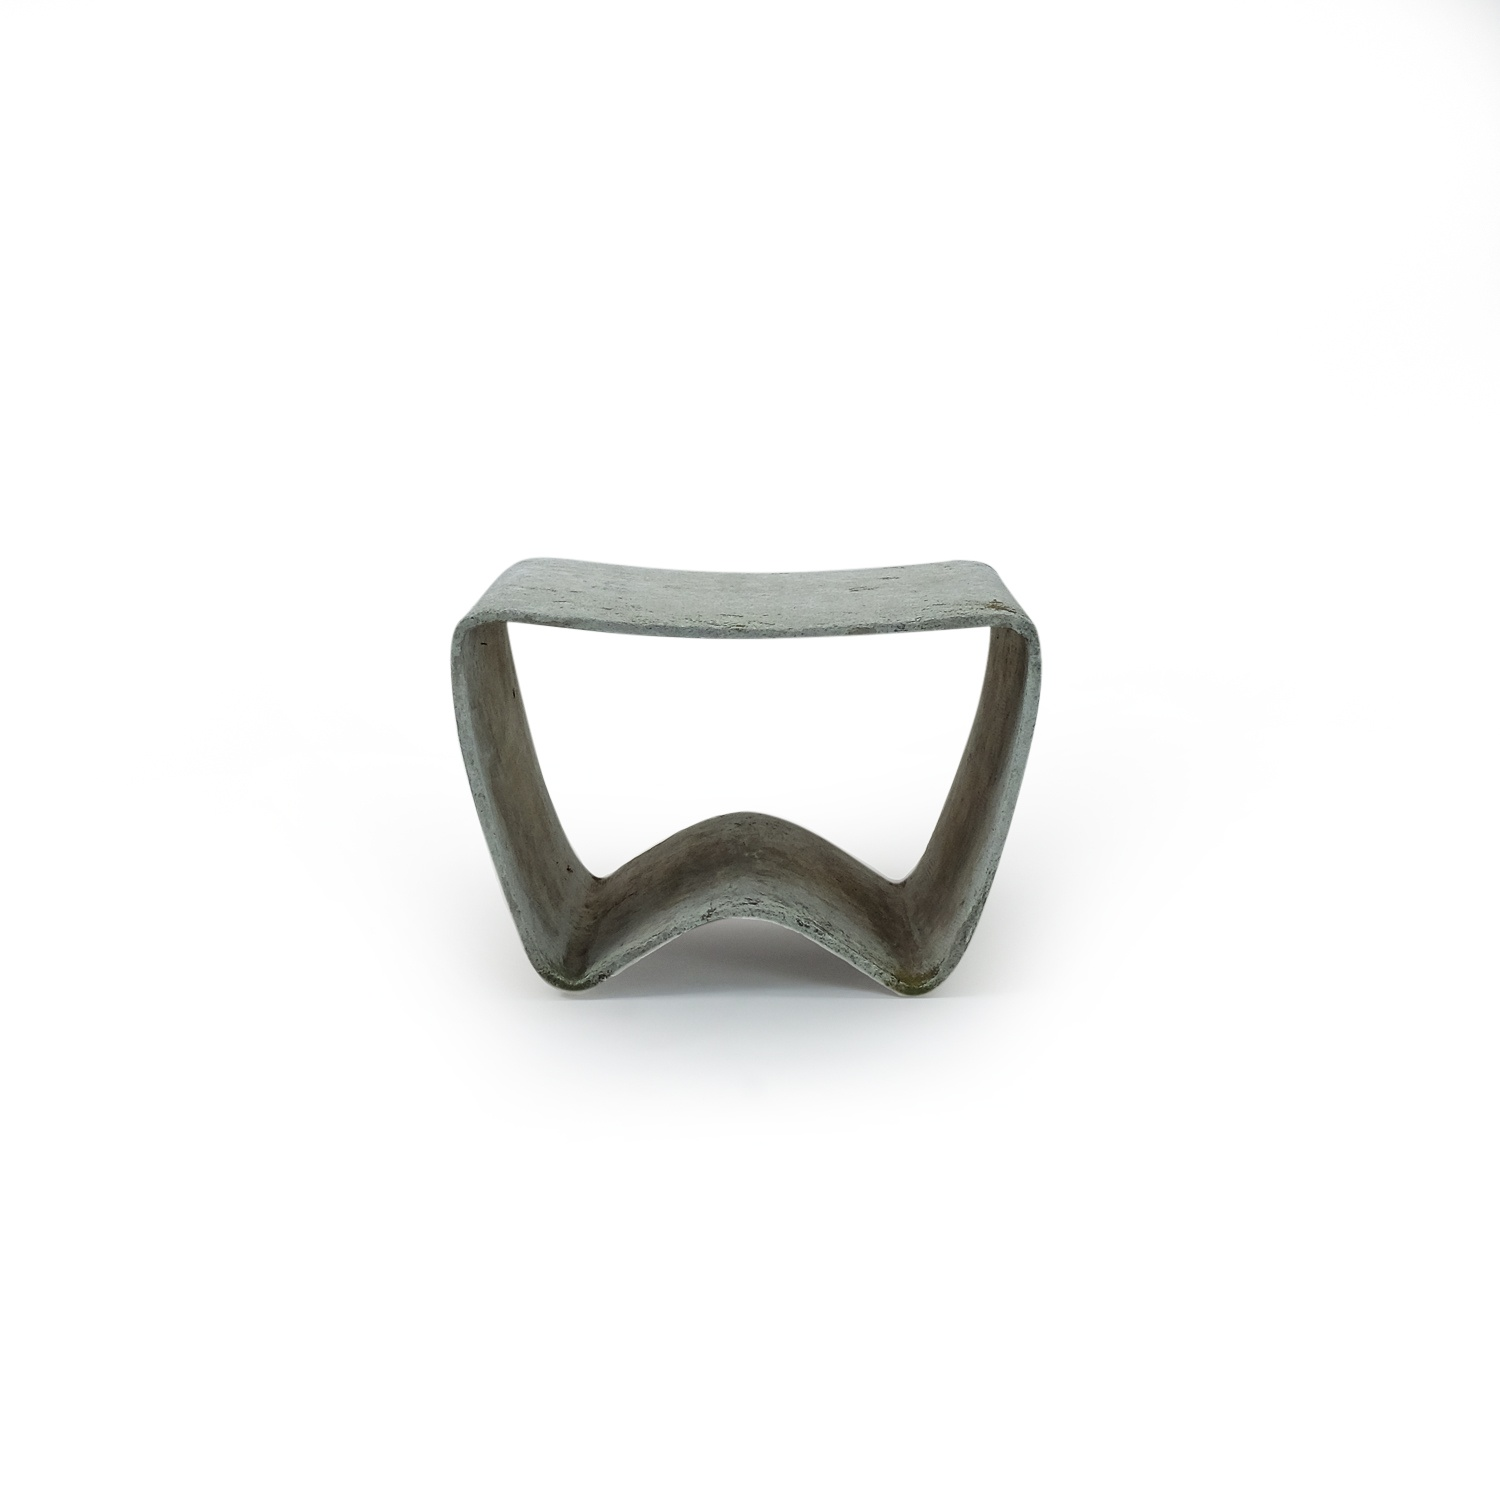 Vintage Stool Eternit by Walser, concrete. For sale at SympleDesign